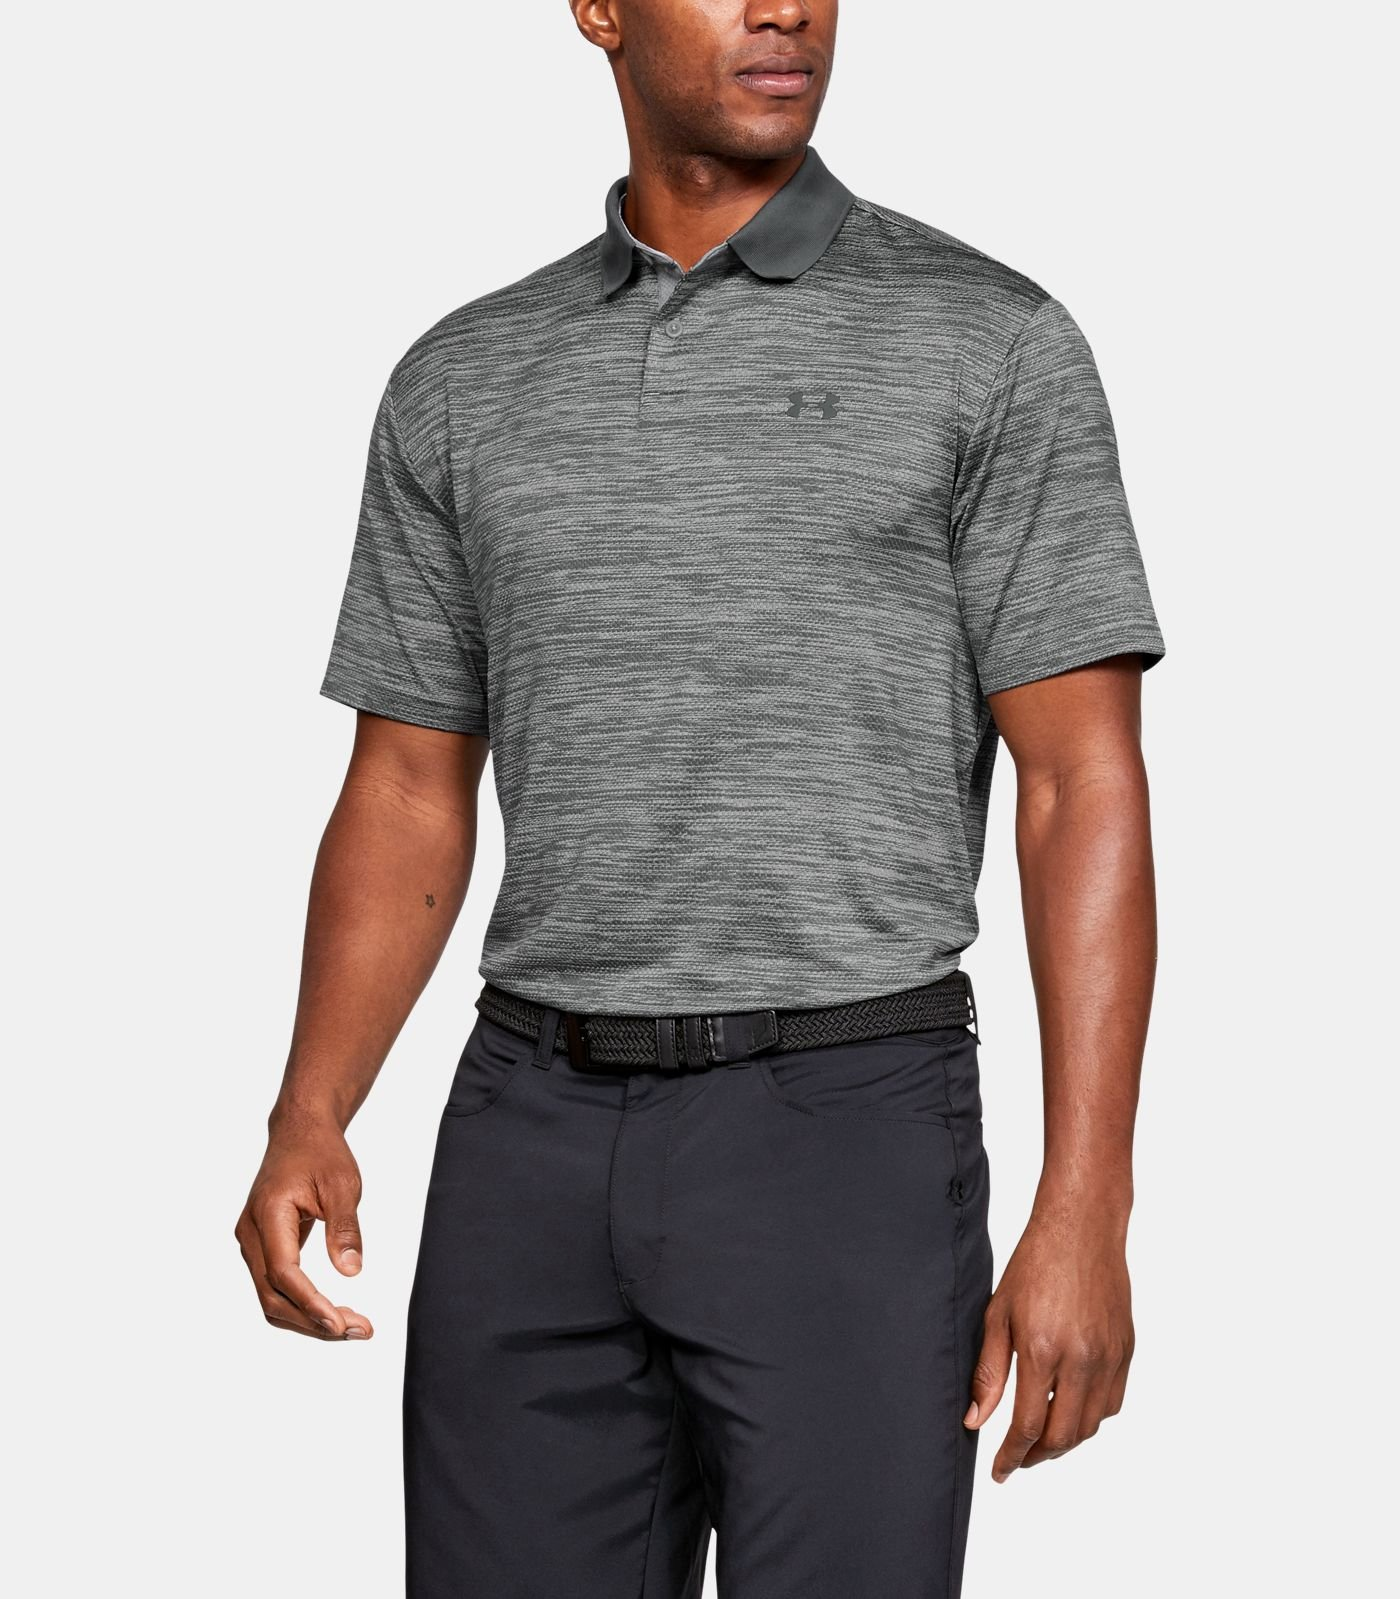 MENS_POLO_PerformanceTextured_UAR1342080035_01